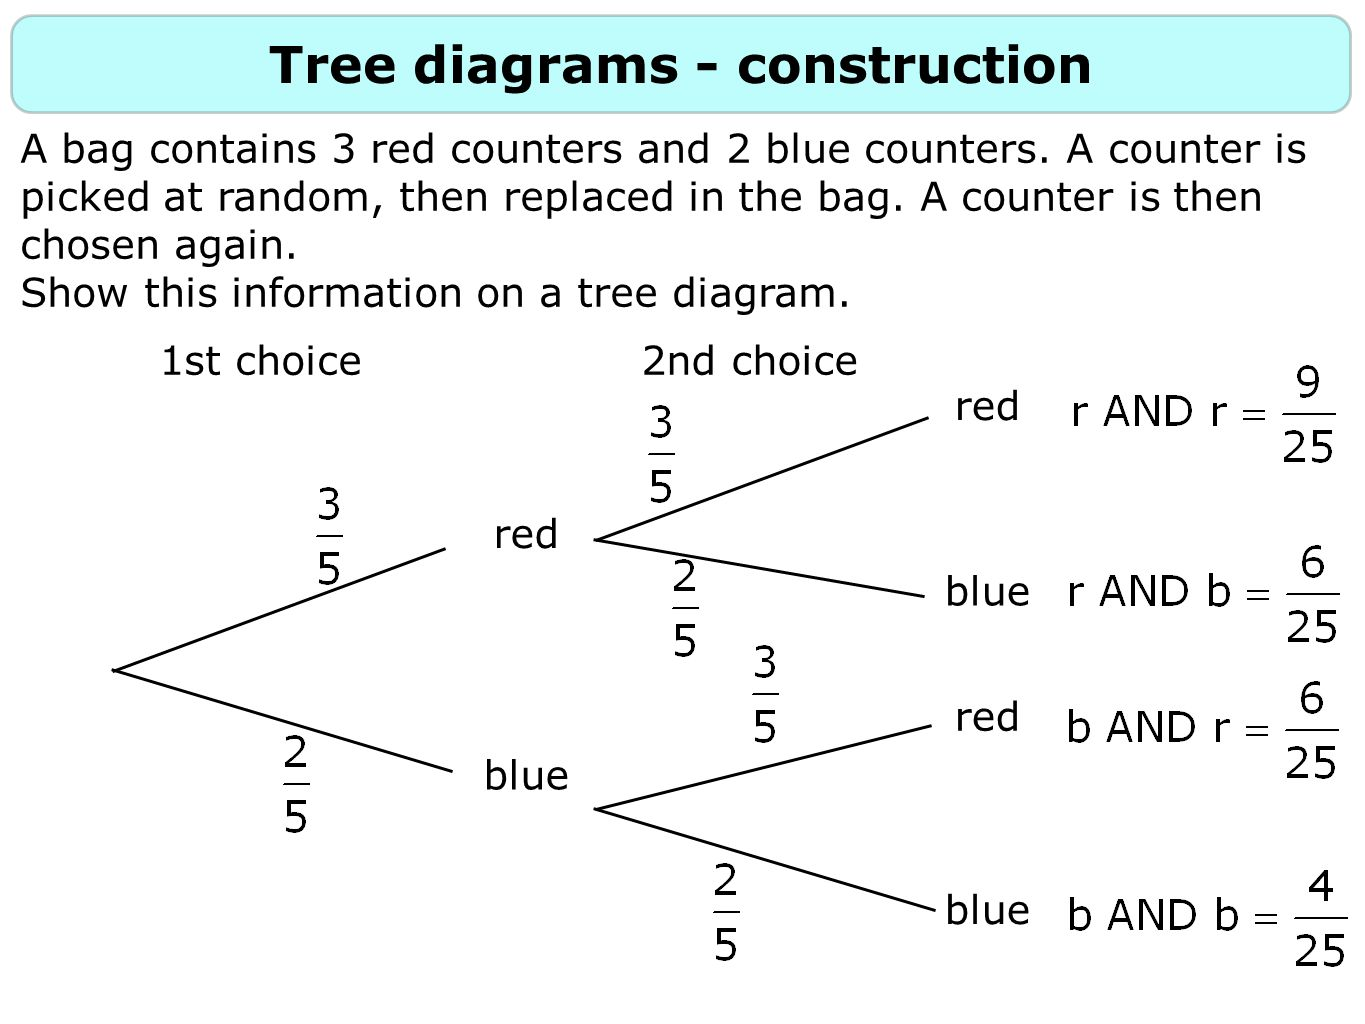 Probability 2 constructing tree diagrams ppt download tree diagrams construction ccuart